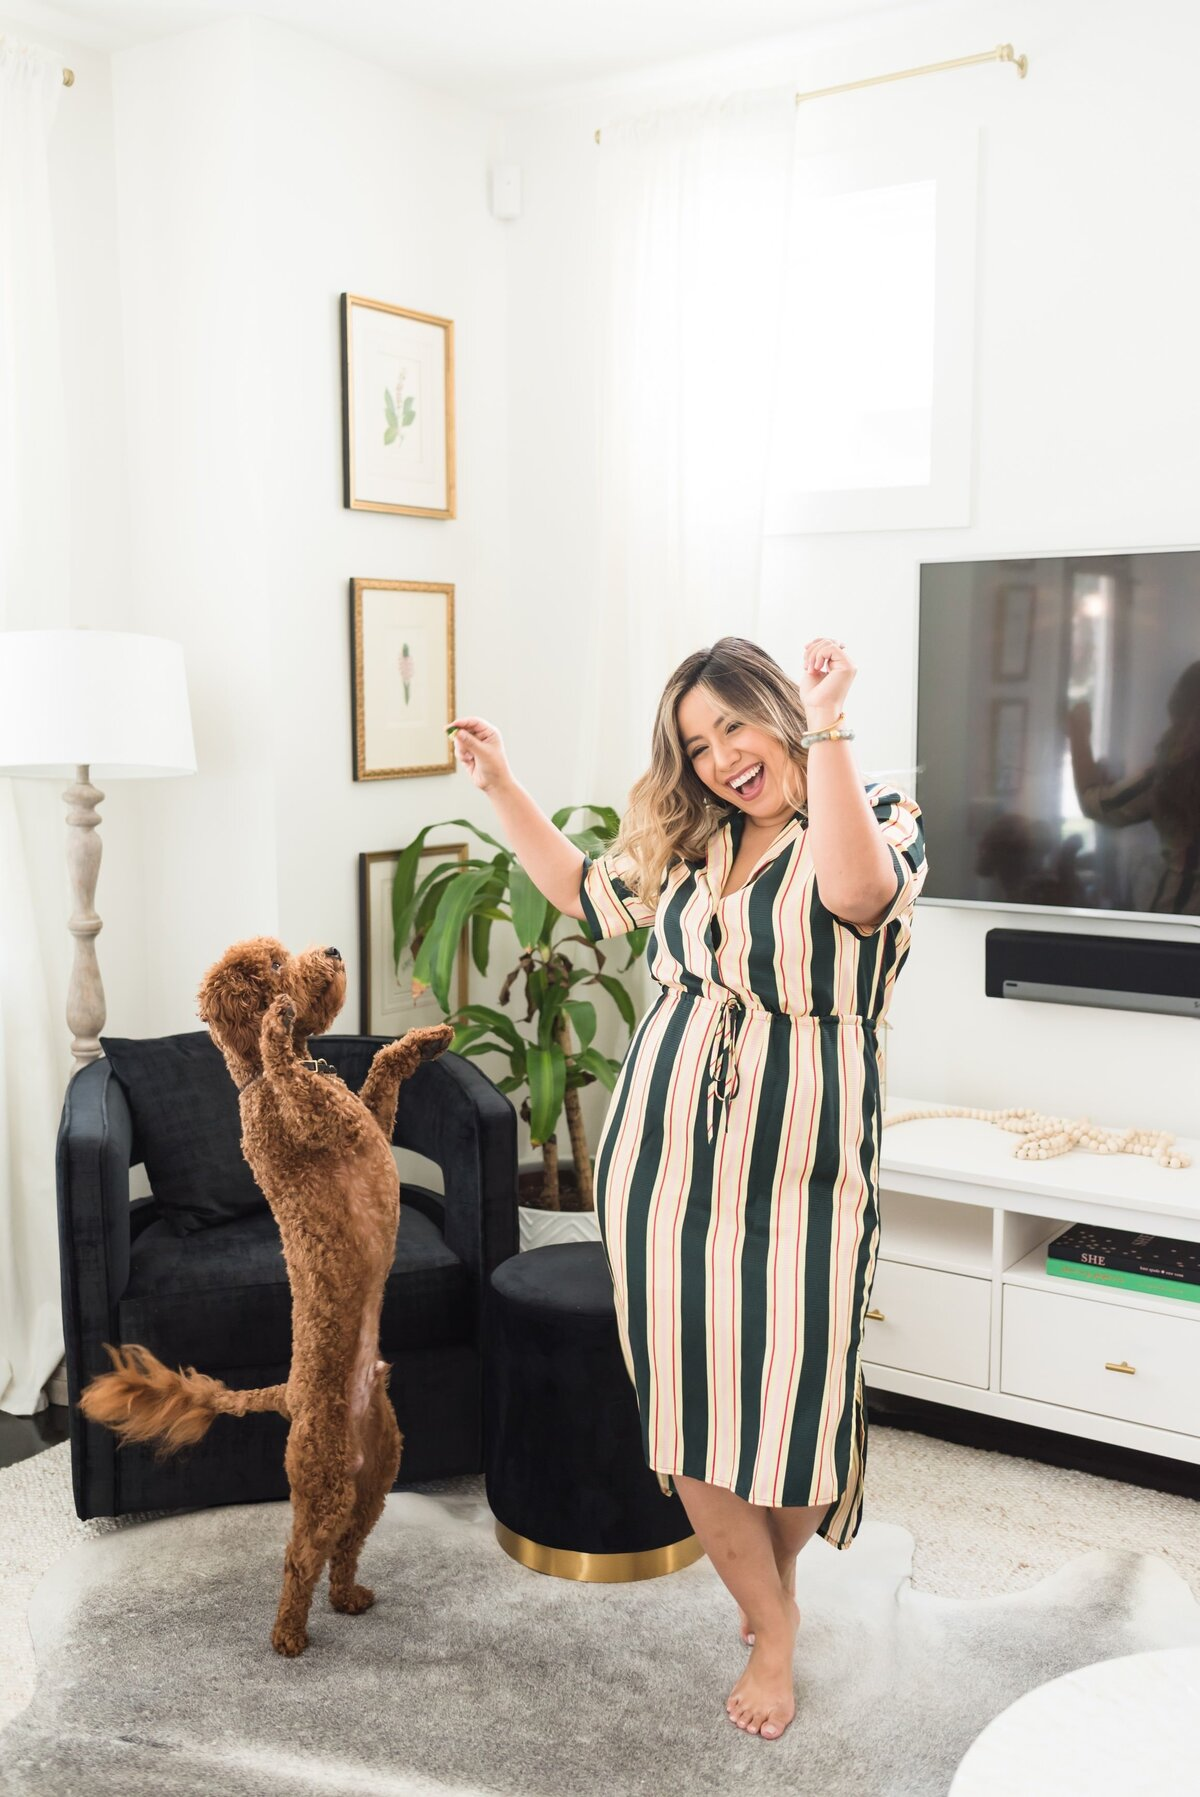 Latina business owner dancing with her dog in a living room for fun and casual personal brand photos